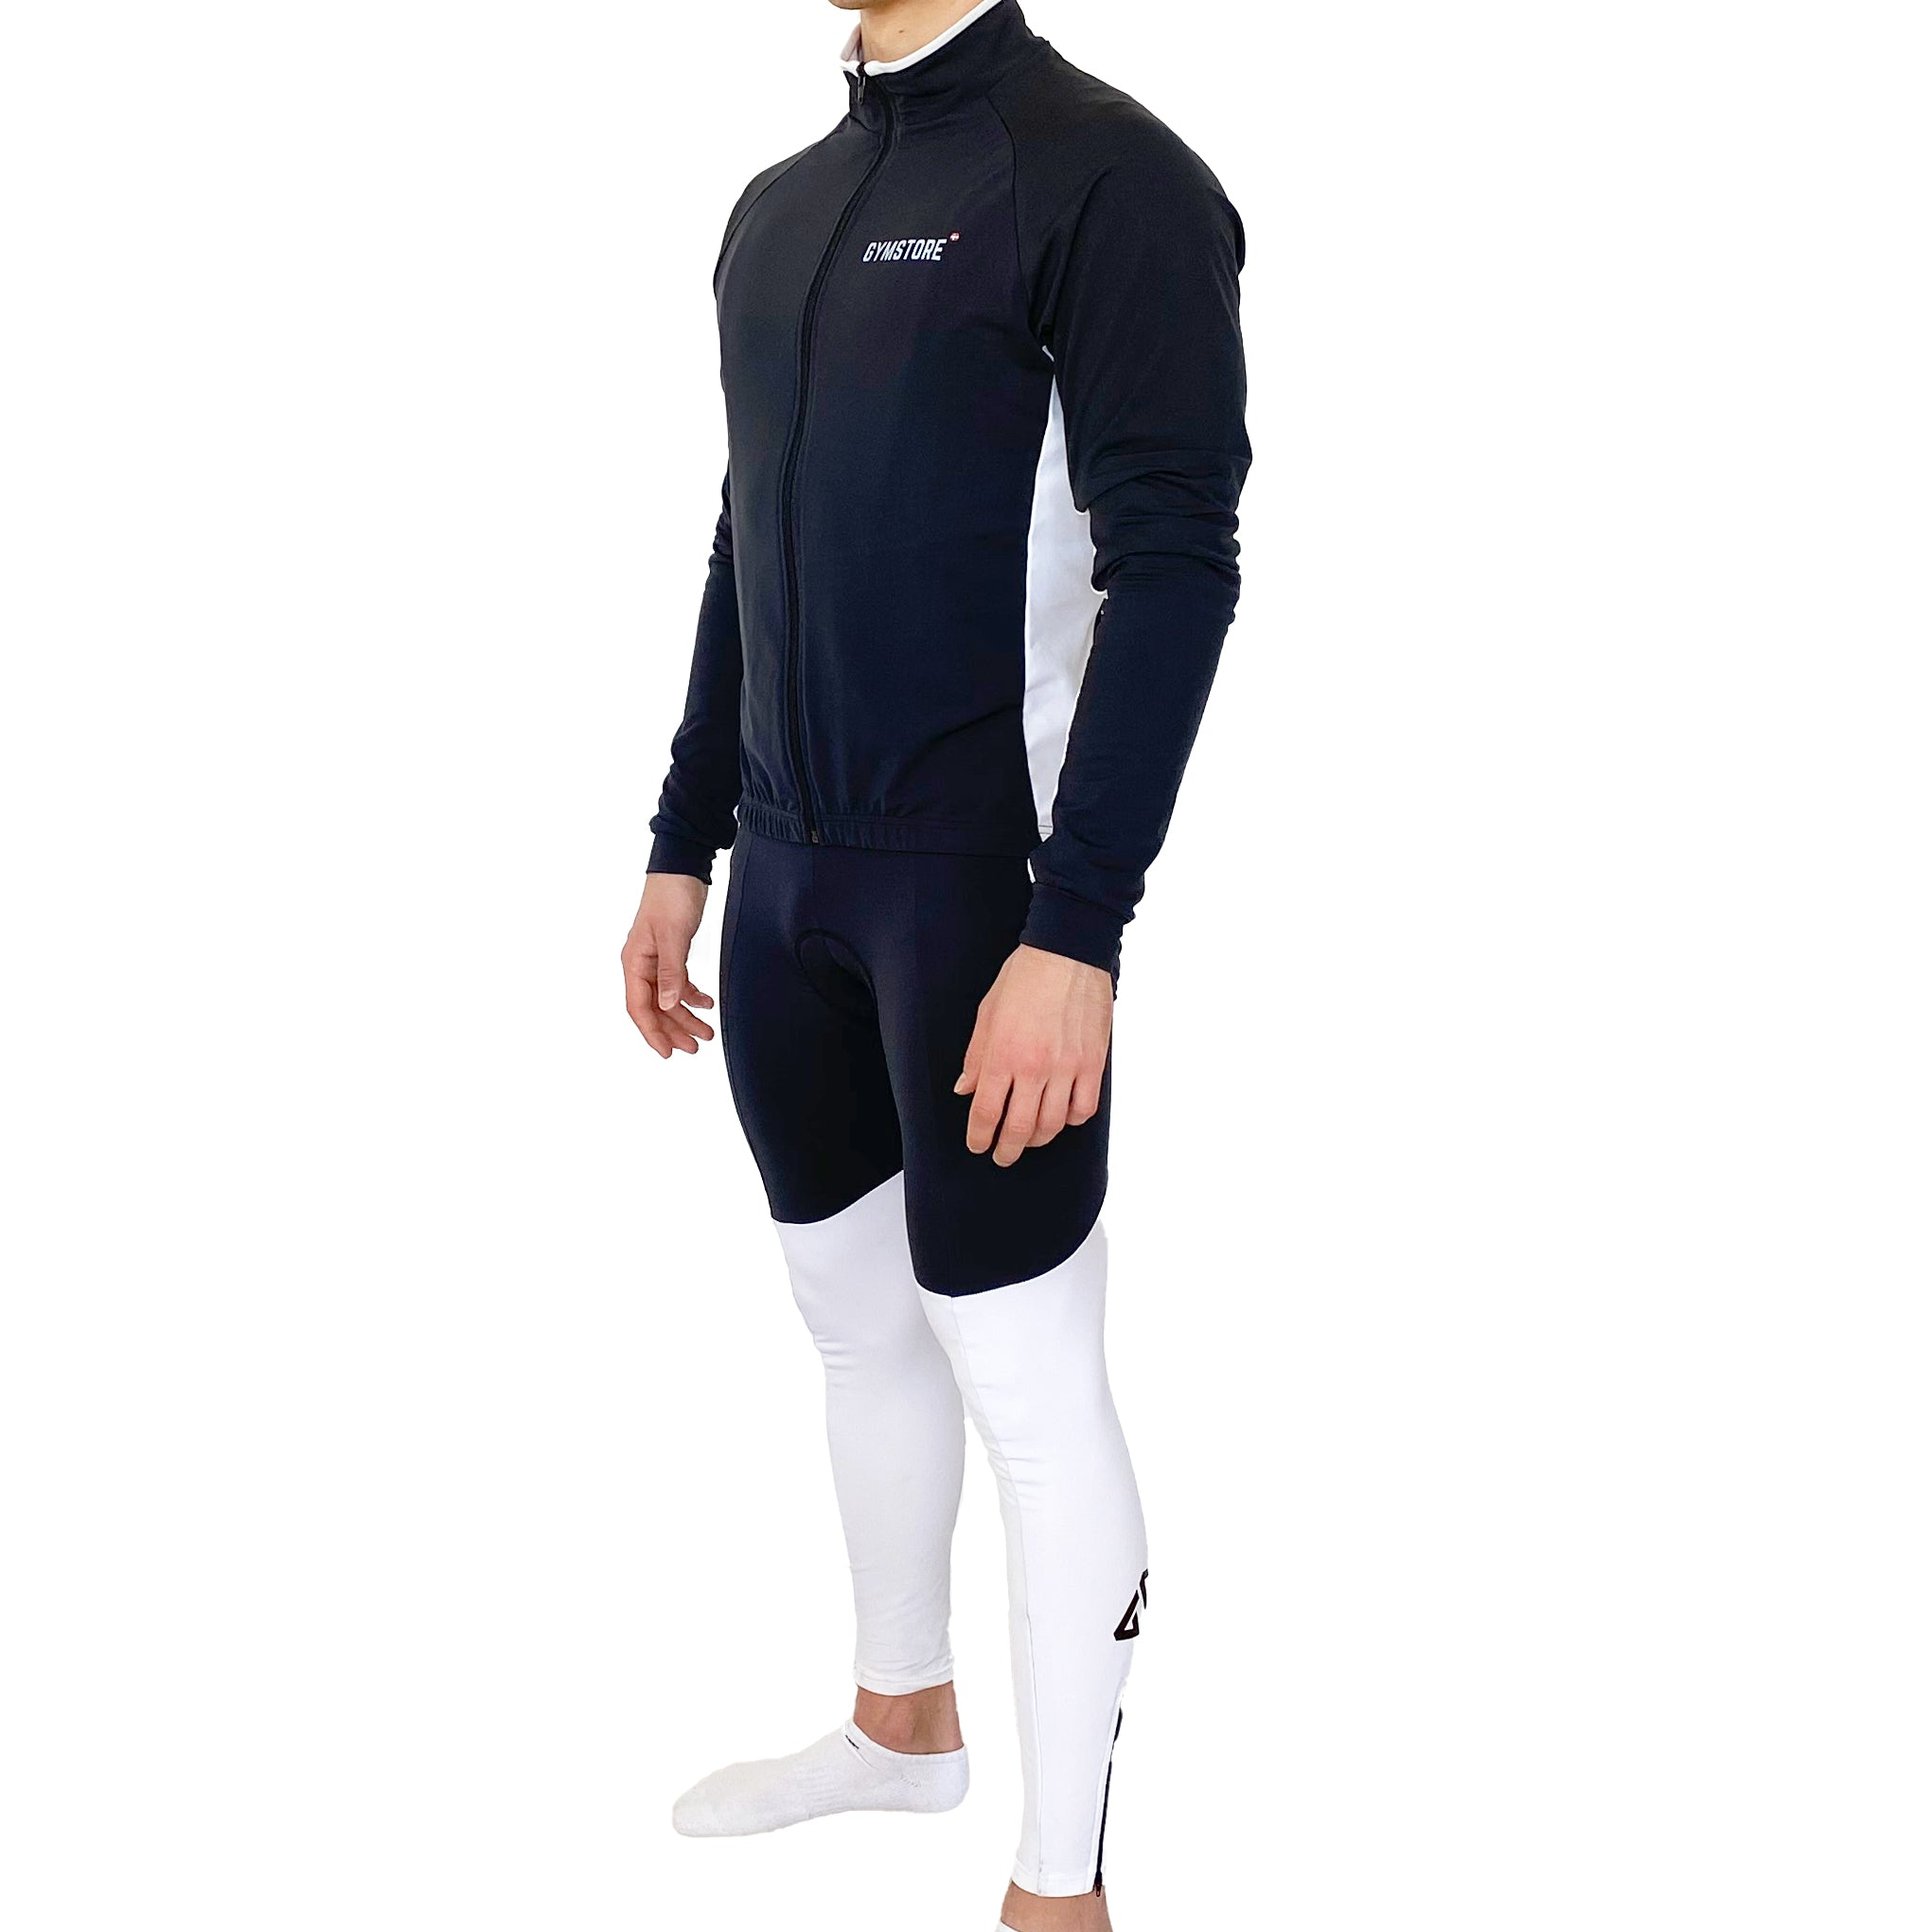 Gymstore Black/White Cycling Long Bib